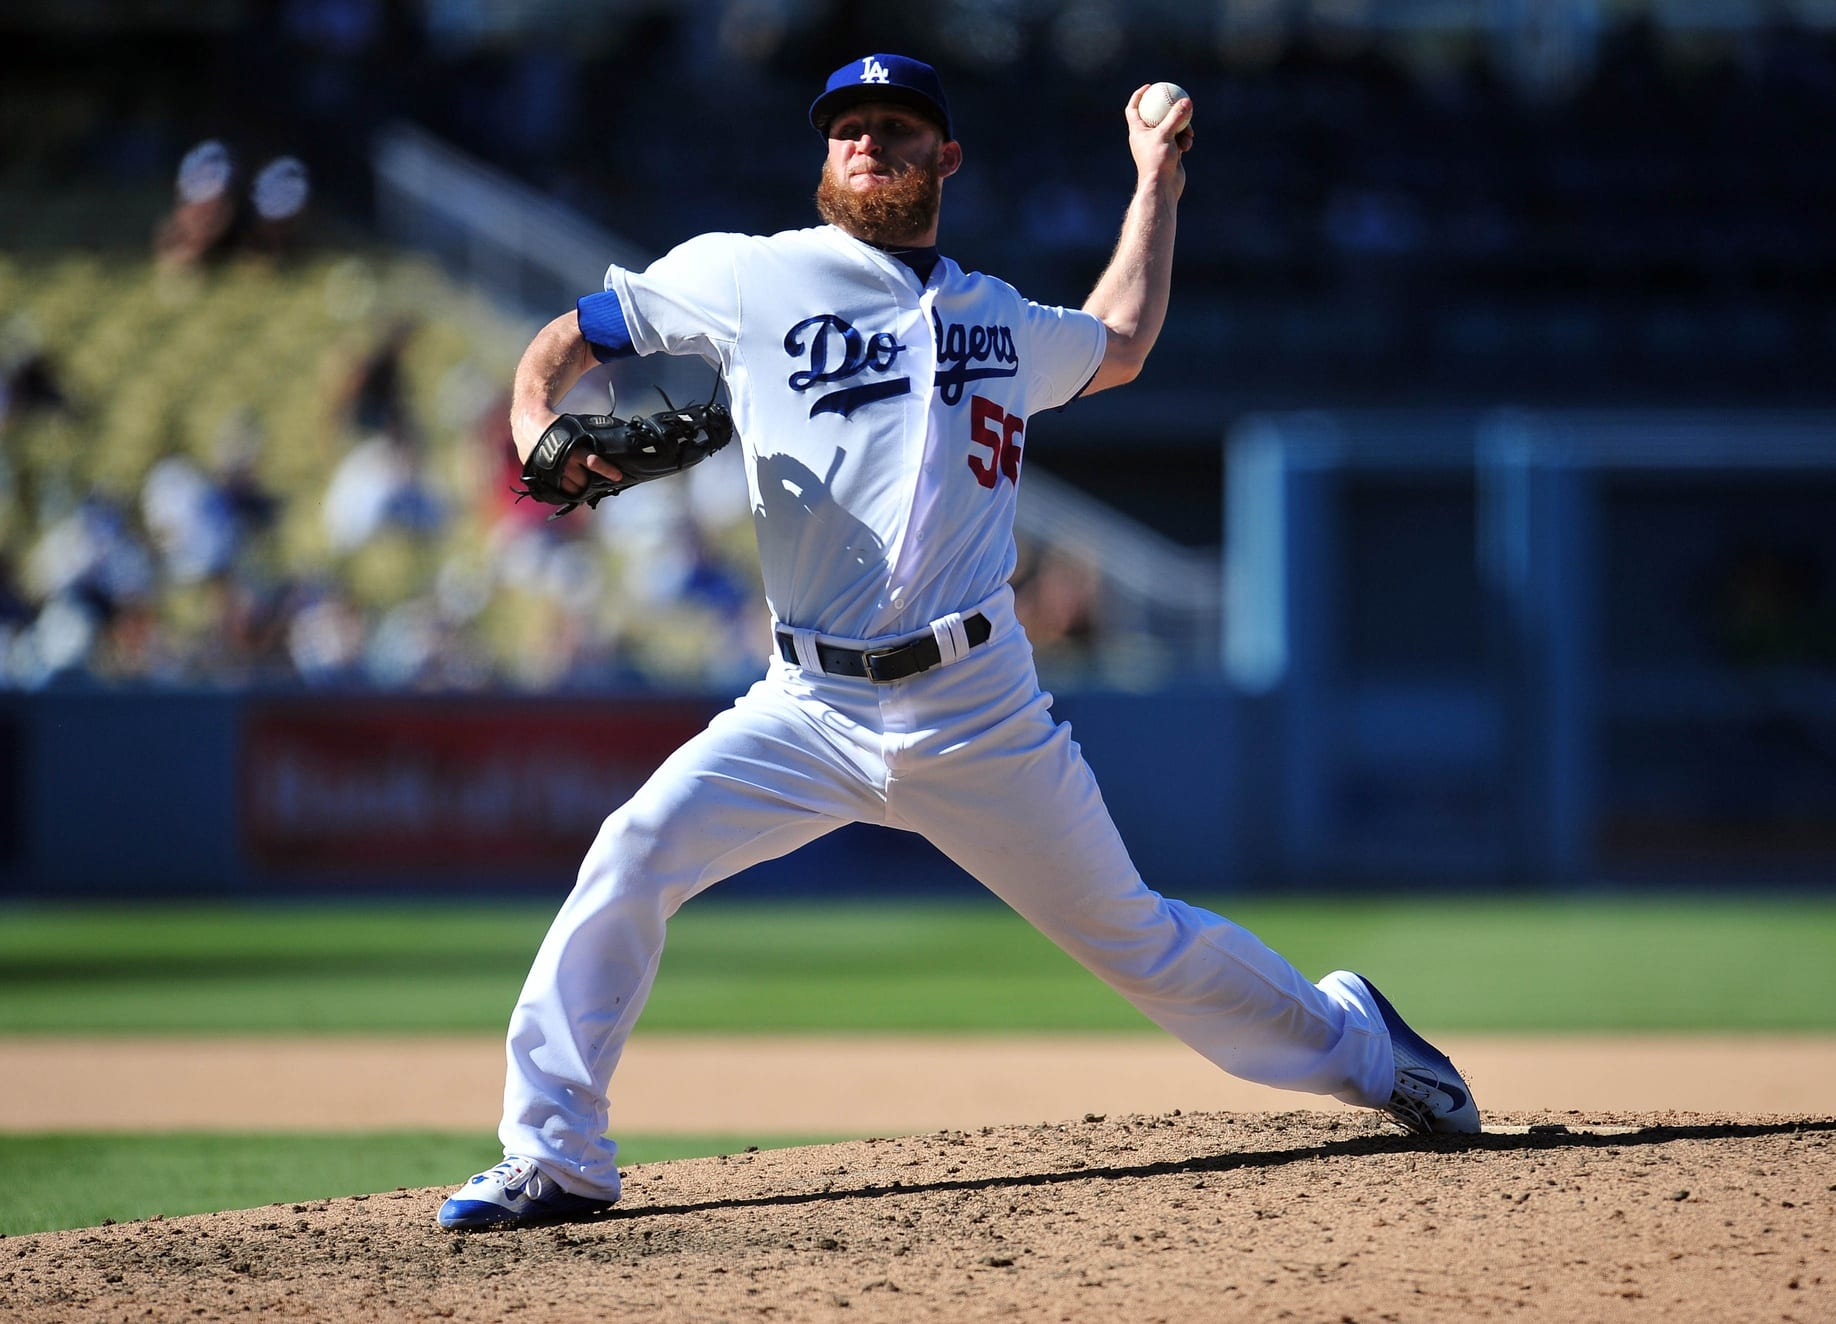 Dodgers News: J.p. Howell Exercises Player Option For 2016